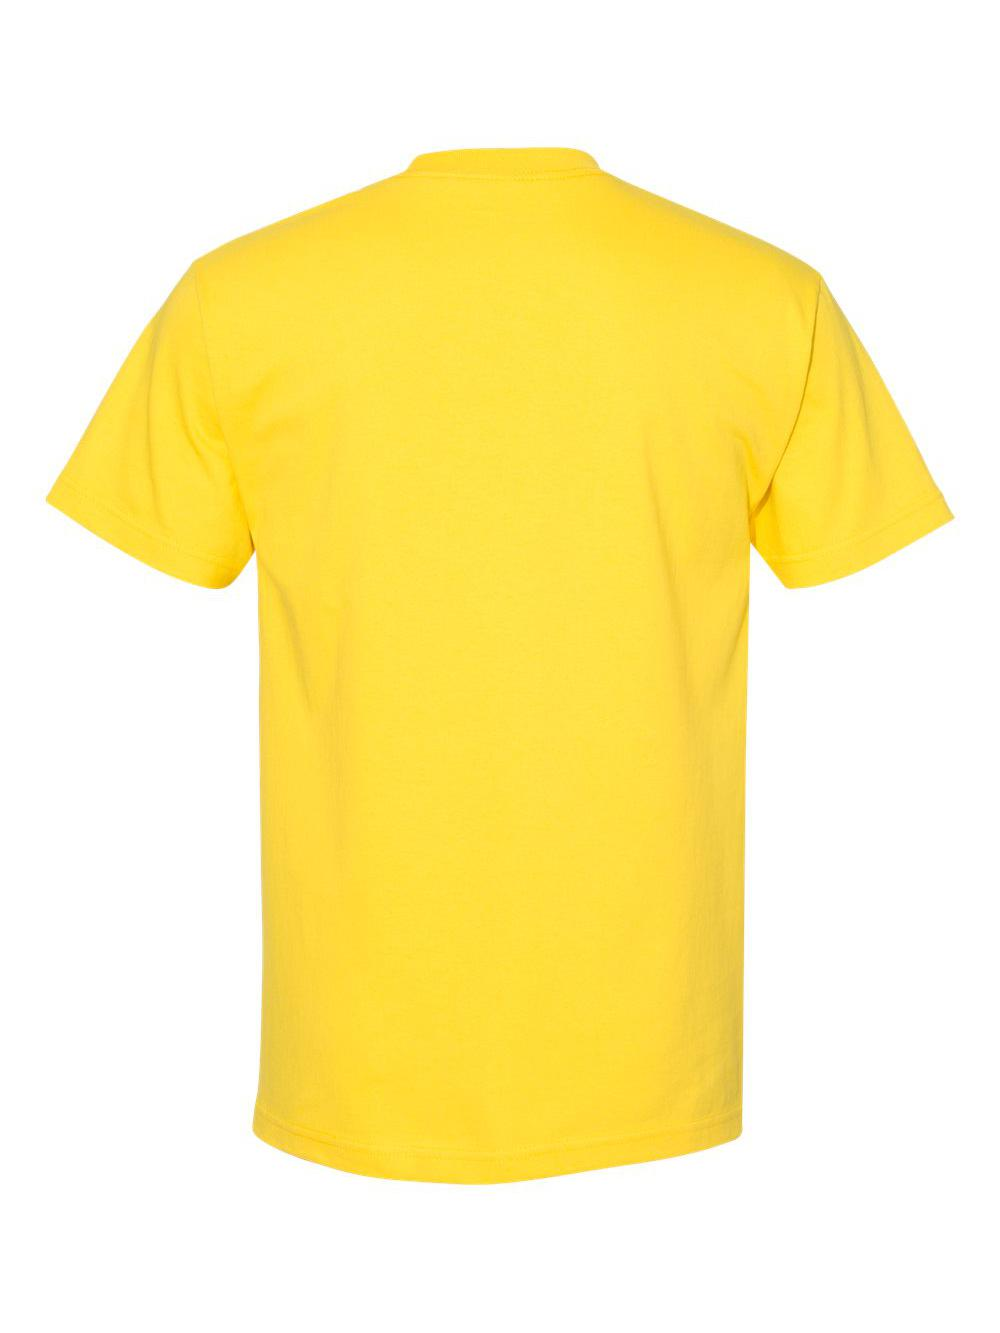 ALSTYLE-Classic-T-Shirt-1301 thumbnail 90